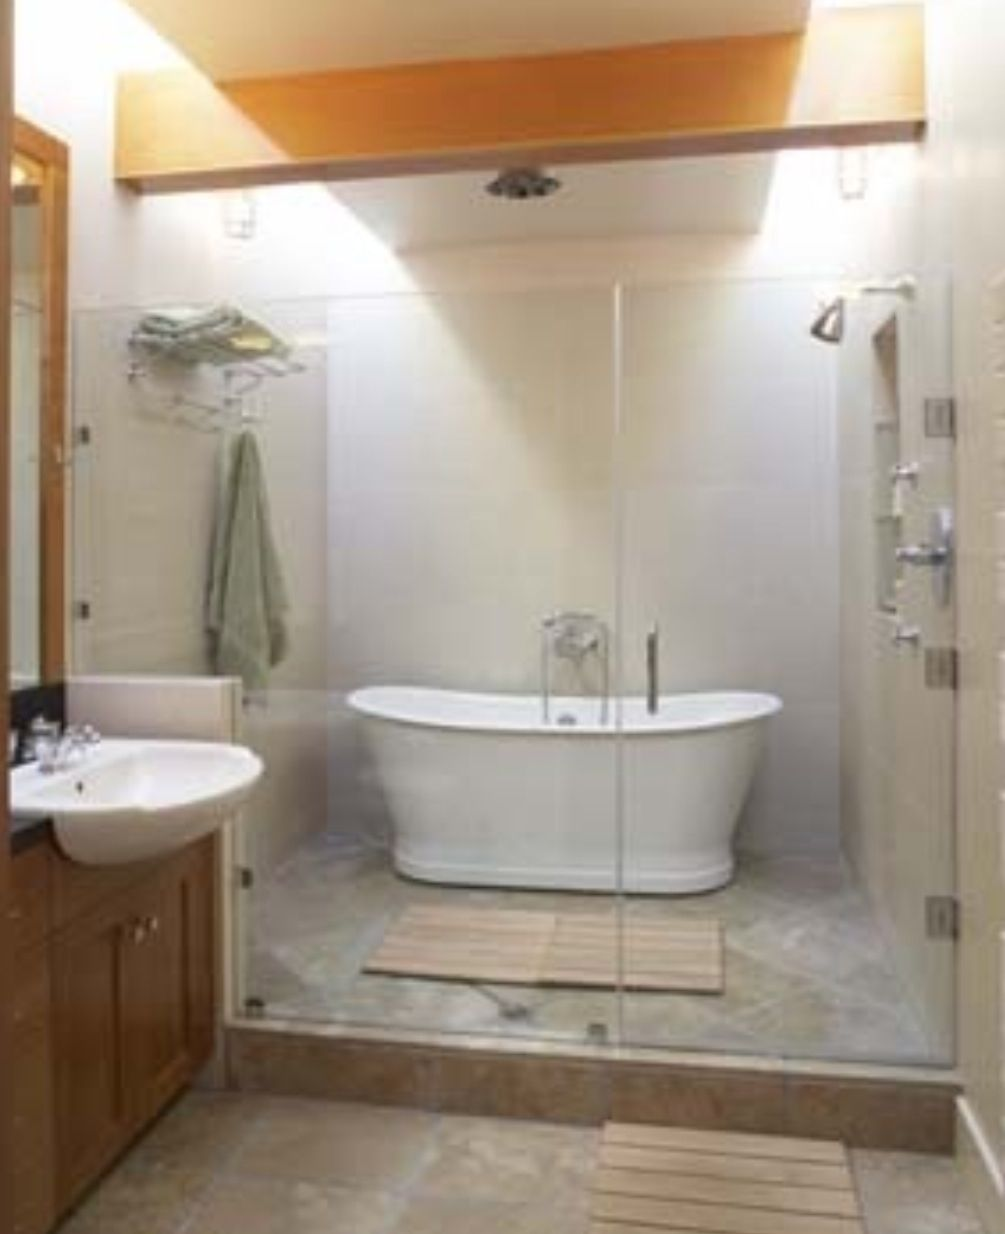 shower/tub wet room | Bathrooms | Pinterest | Wet rooms on Wet Room With Freestanding Tub  id=34219